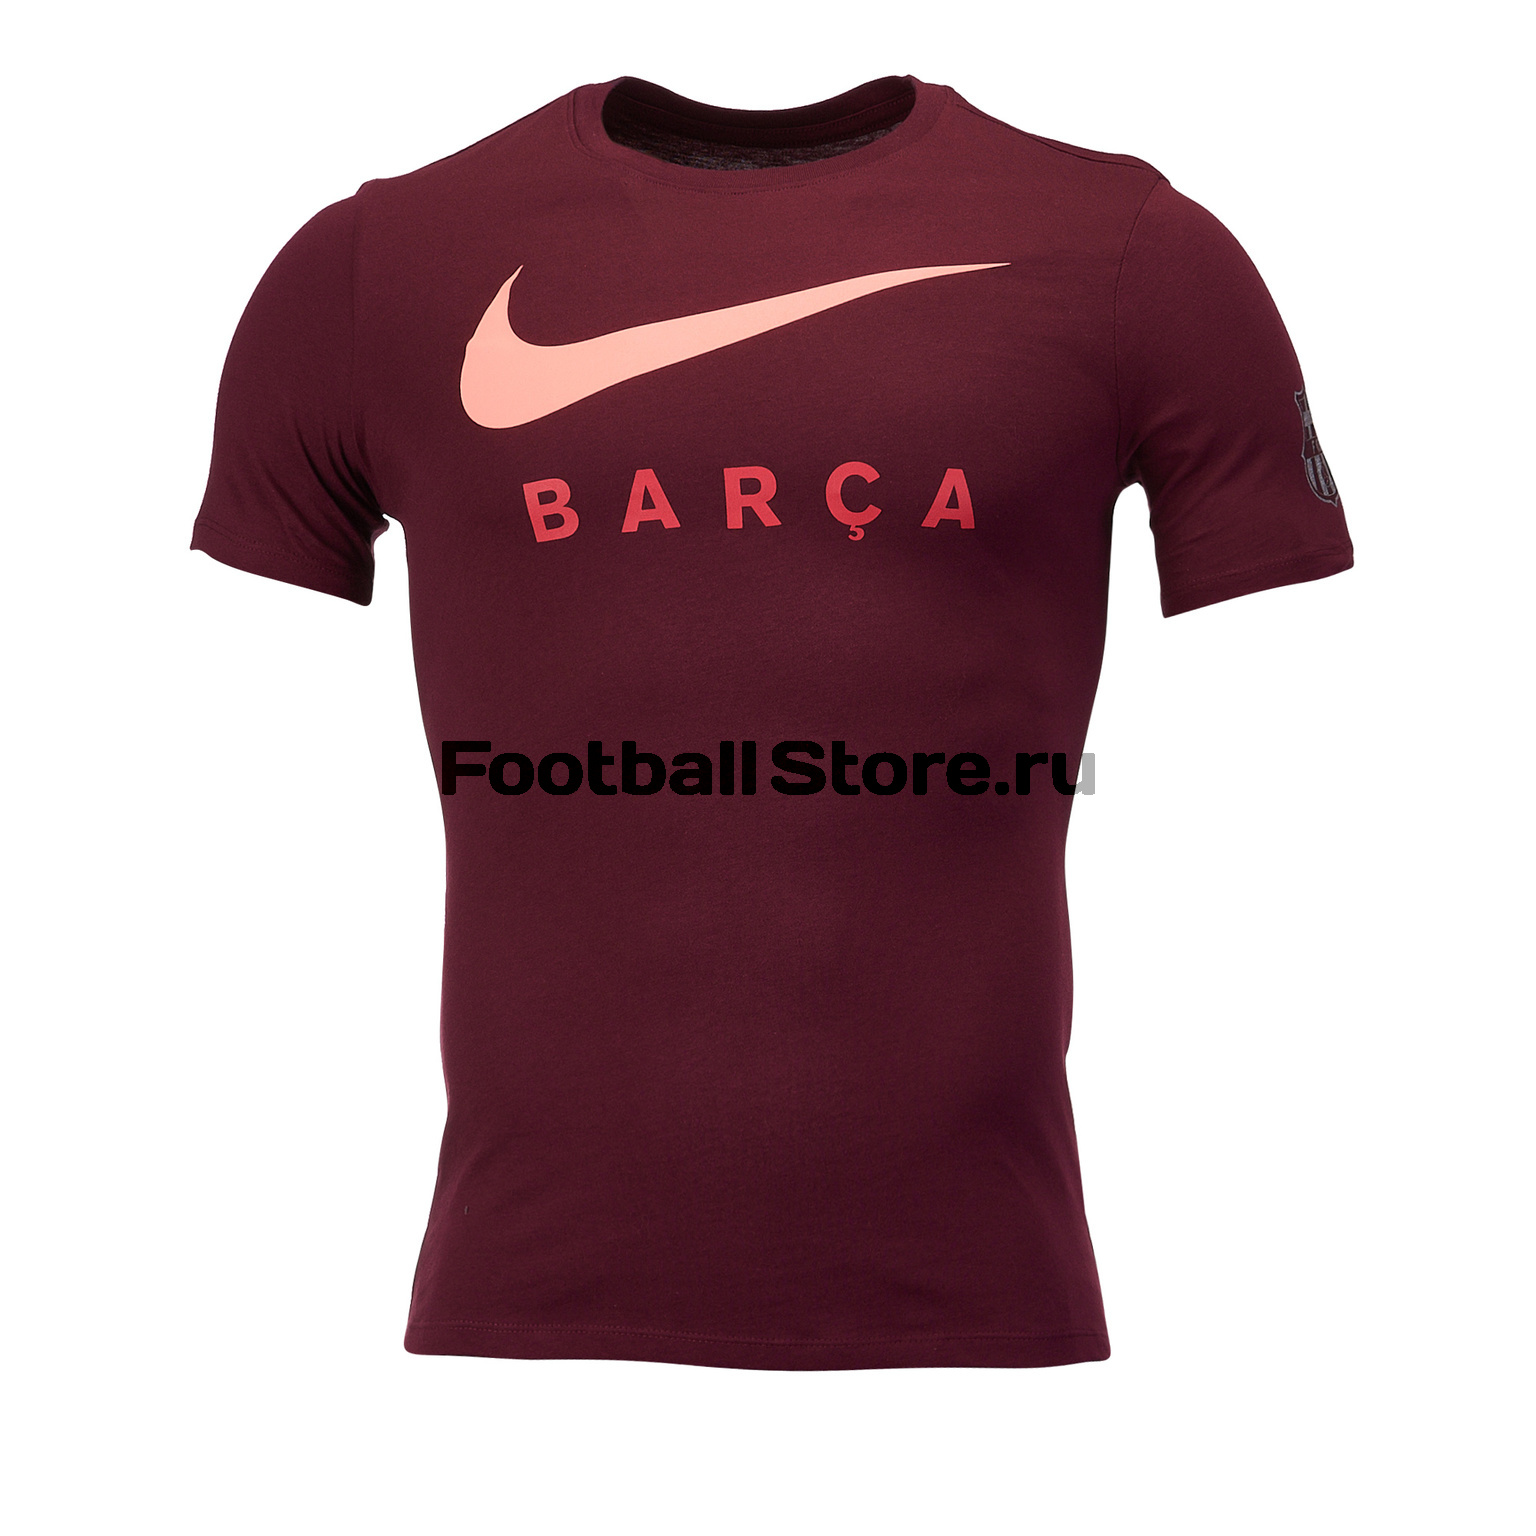 Футболка Nike Barcelona Tee Large AV5056-669 футболка nike футболка b nsw tee let there be air page 4